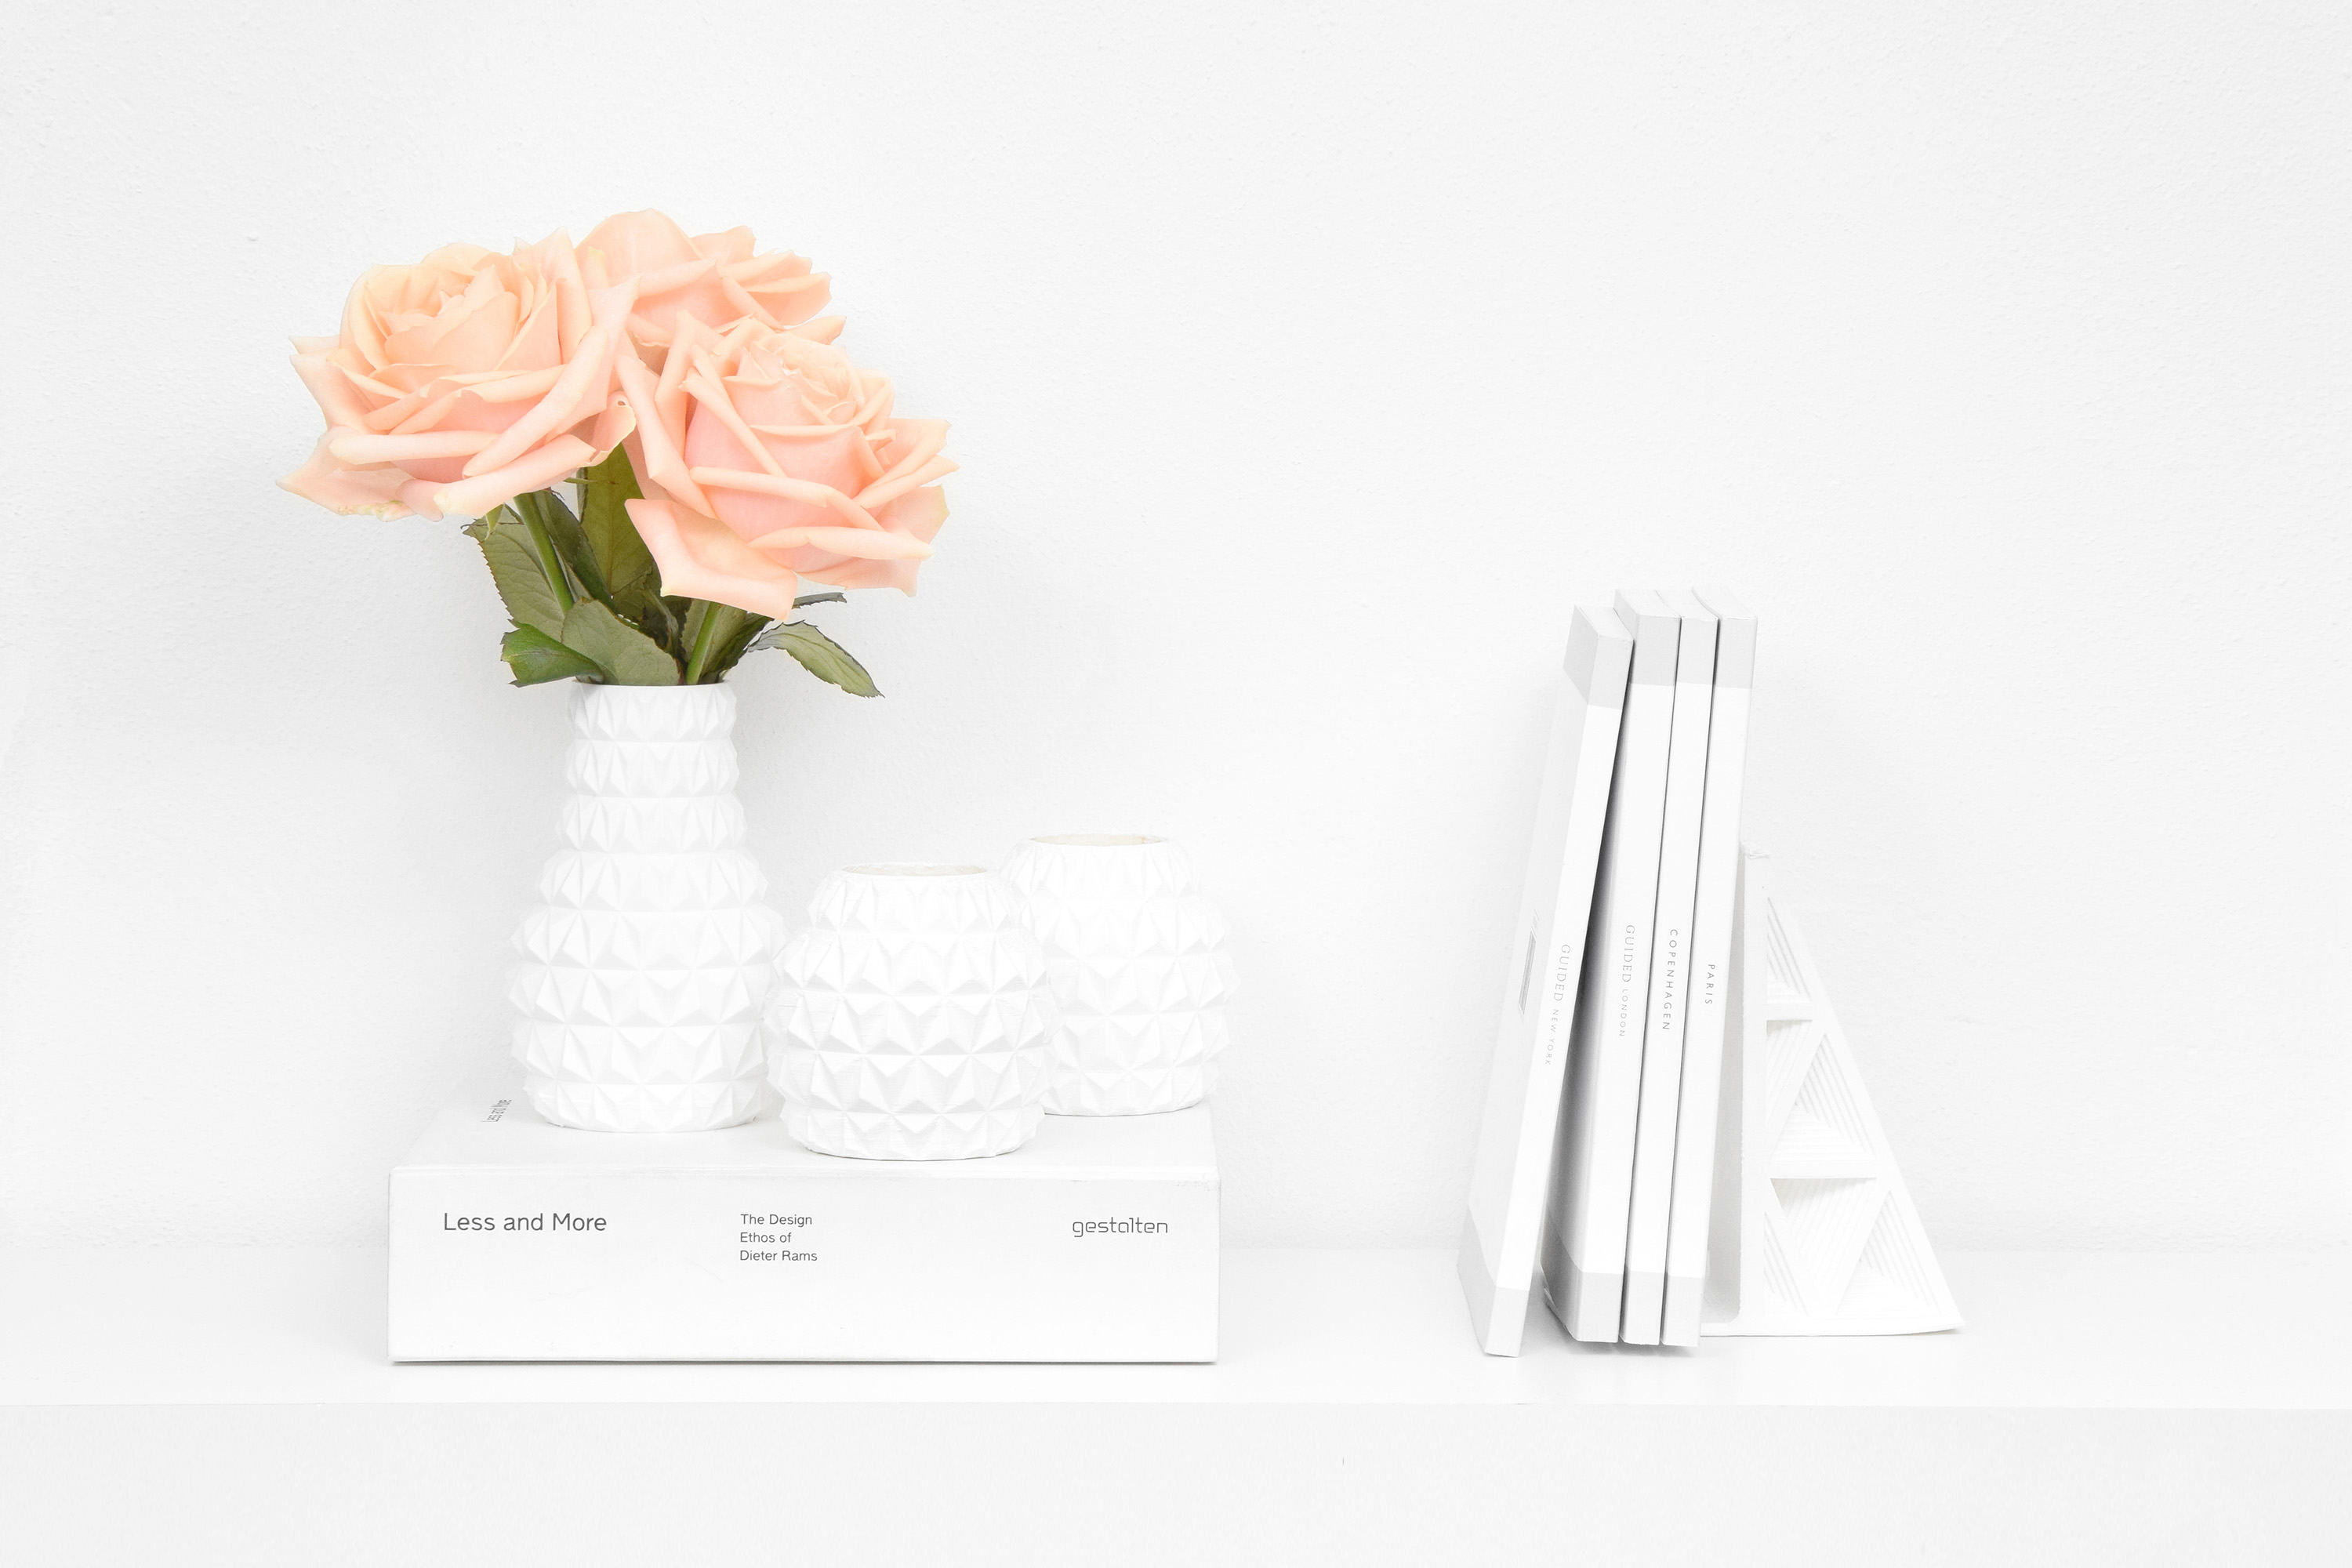 3D Printed Faceted Vase, Design by Matthijs Kok for Cubify